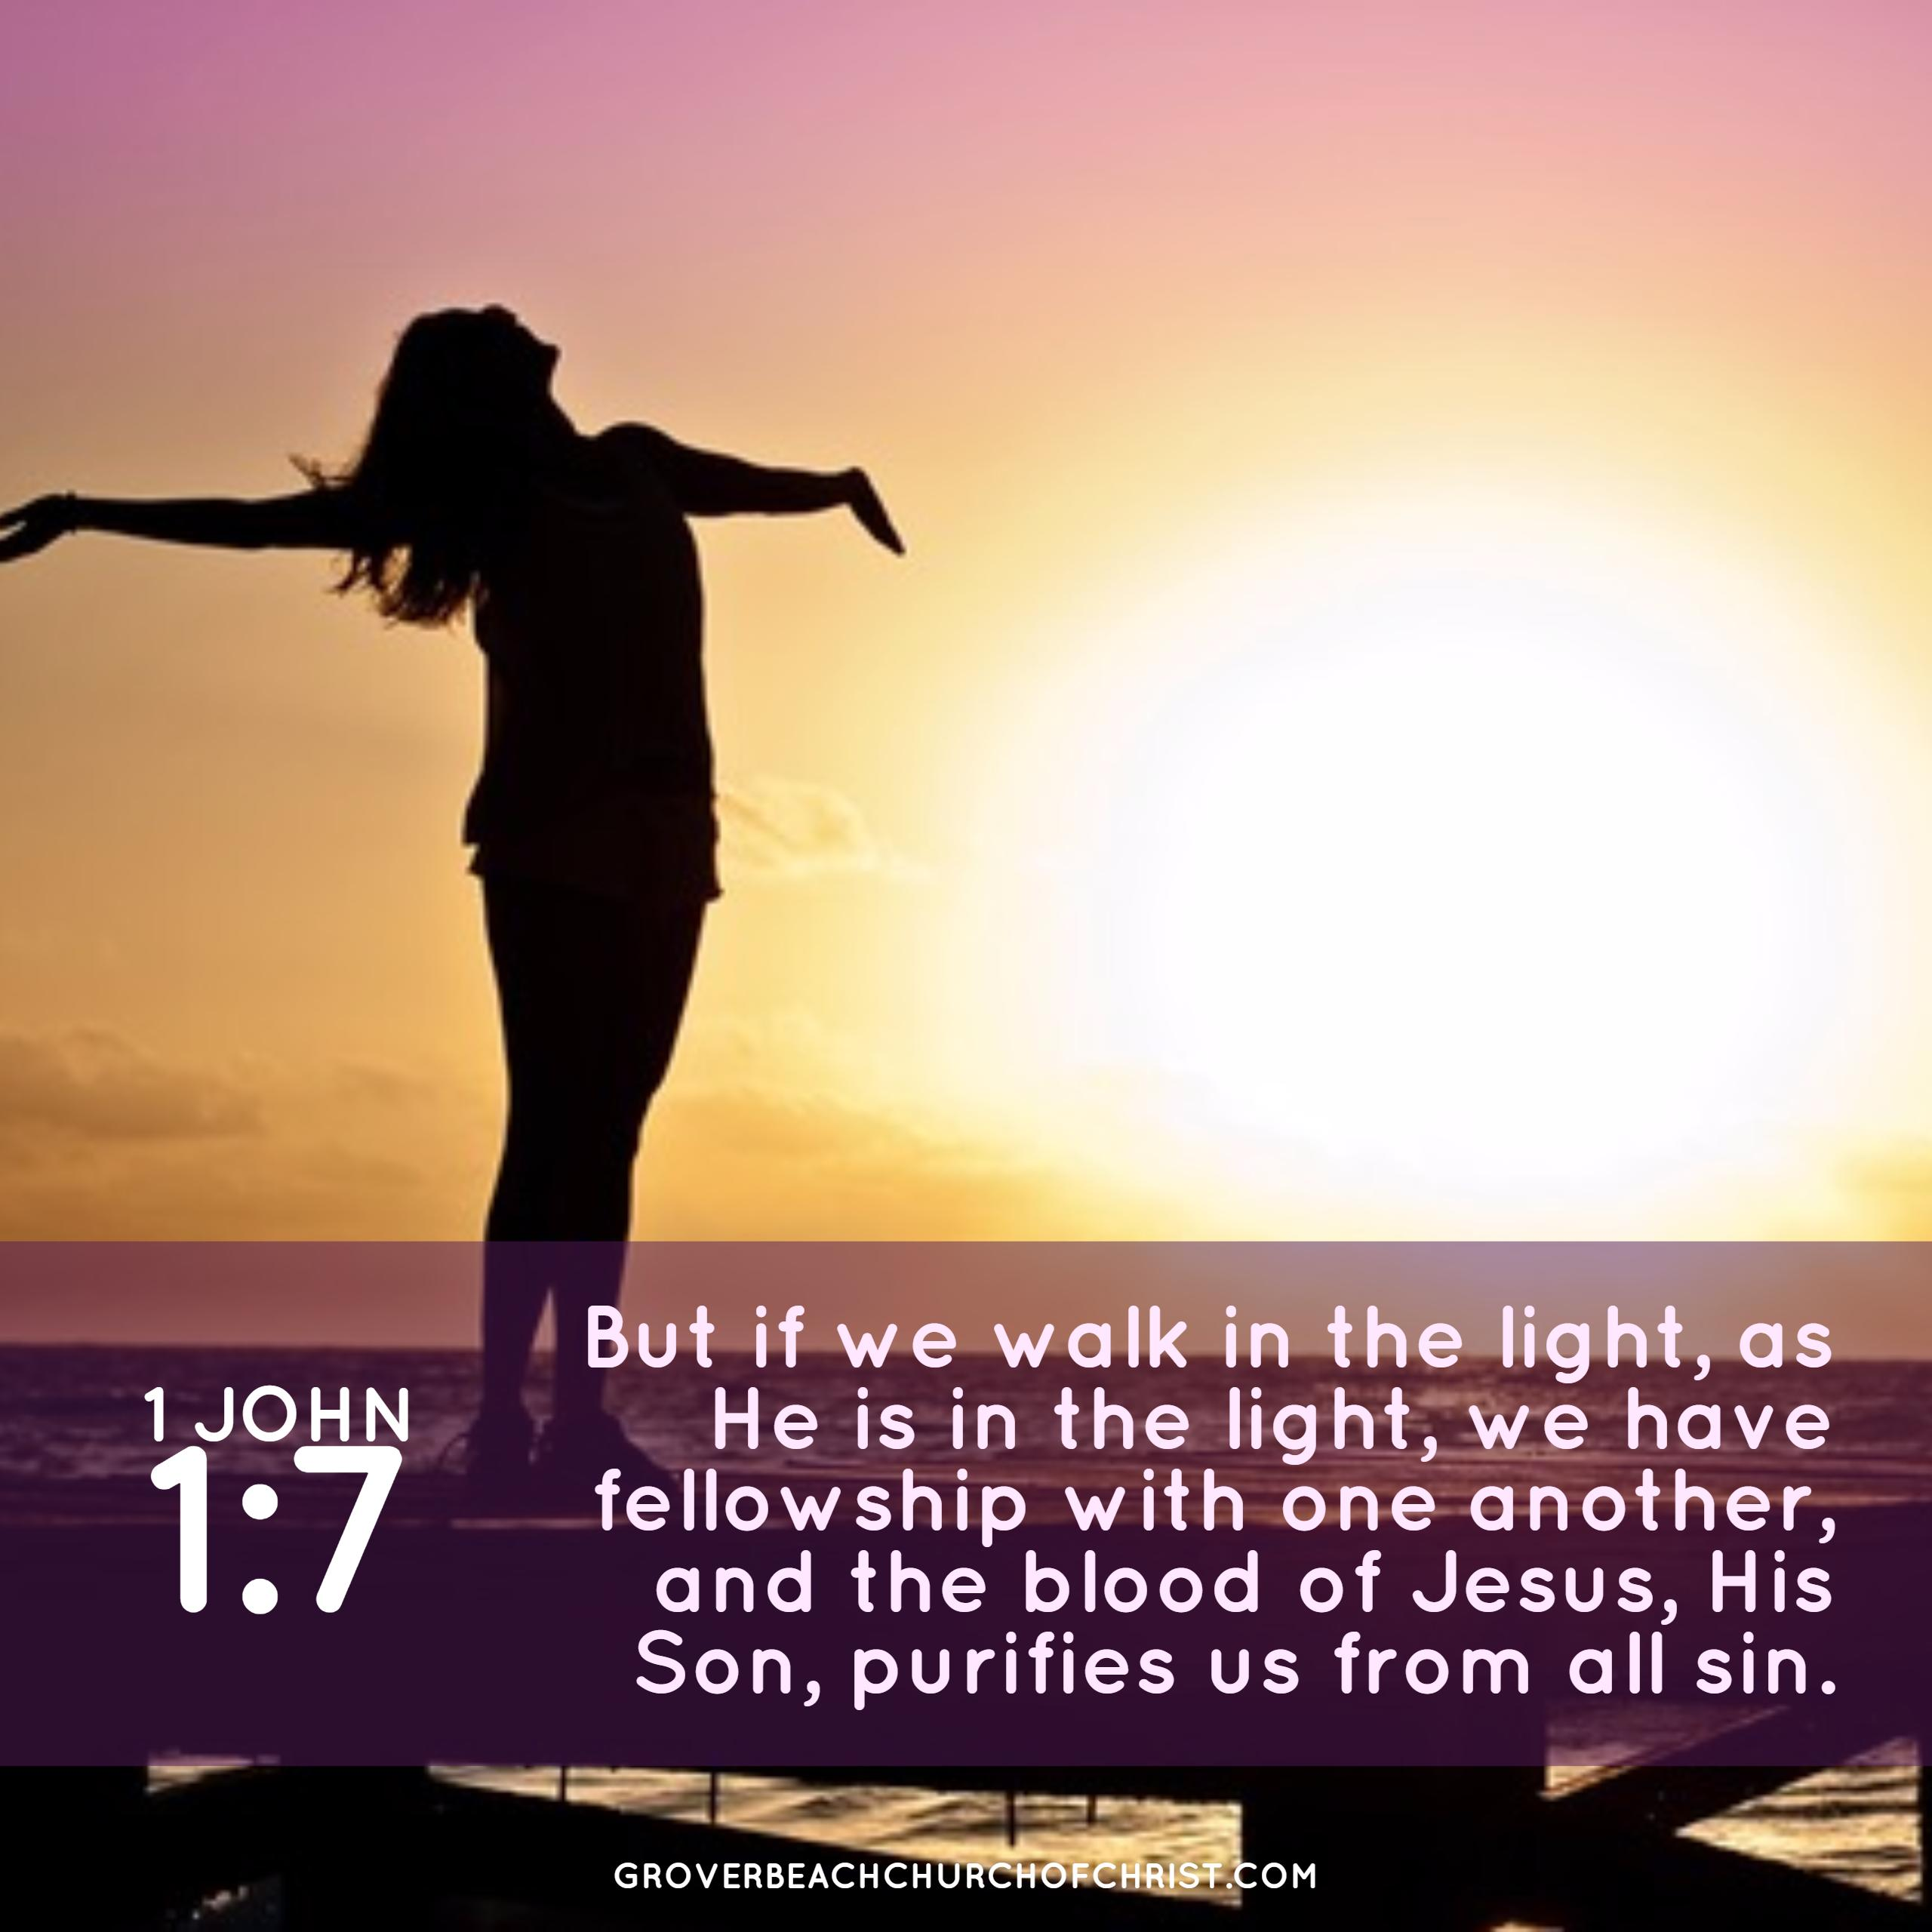 1 John 1-7 But if we walk in the light